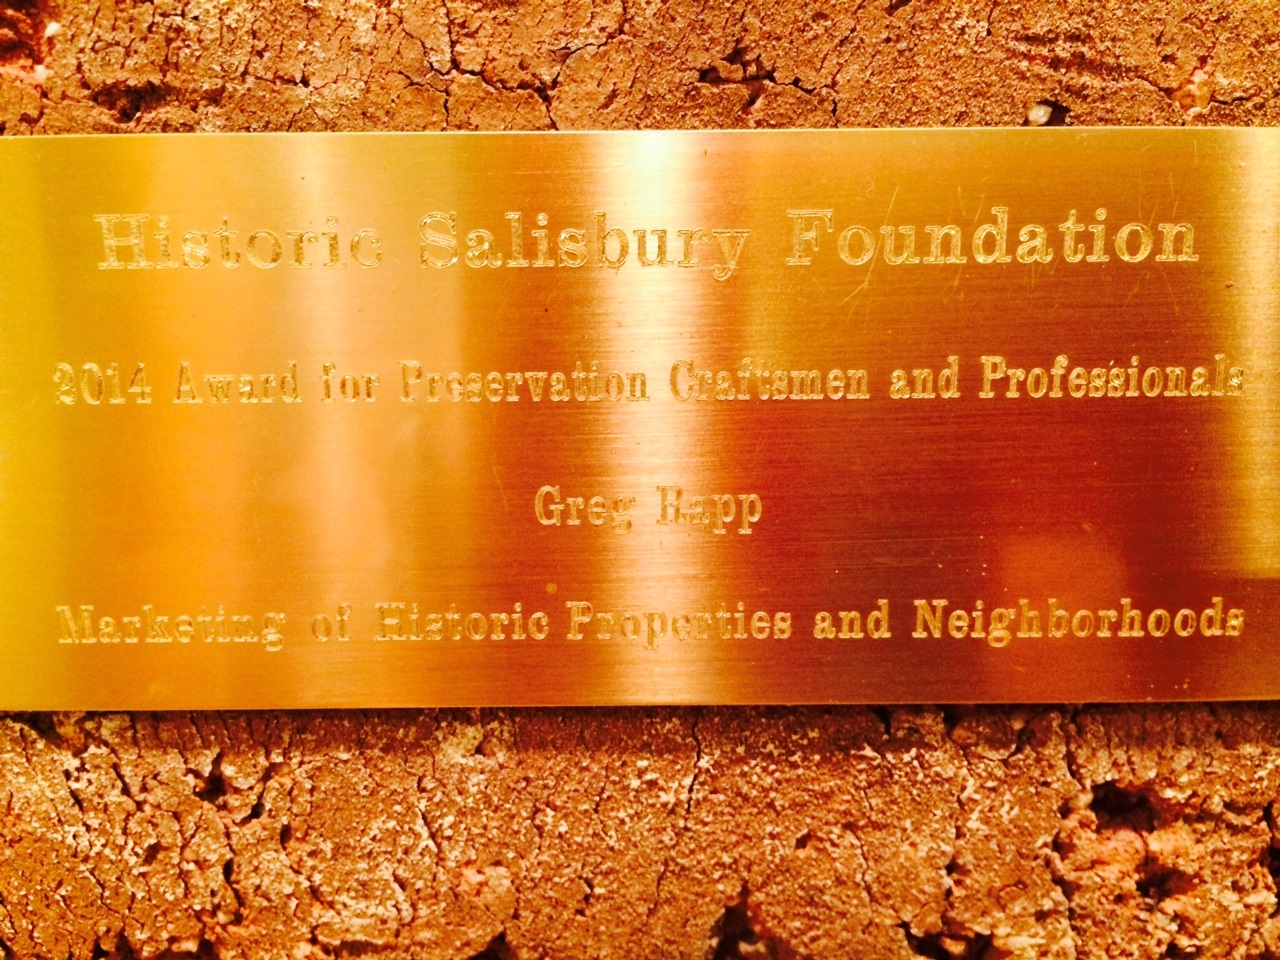 Greg Rapp | Recognized by Historic Salisbury Foundation